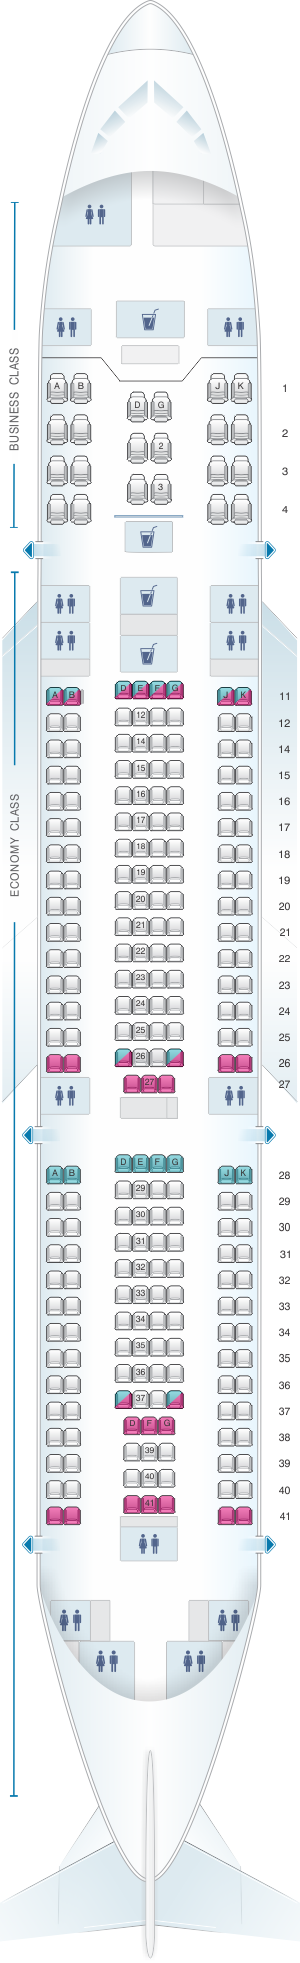 Seat map for Turkish Airlines Boeing B747 400F